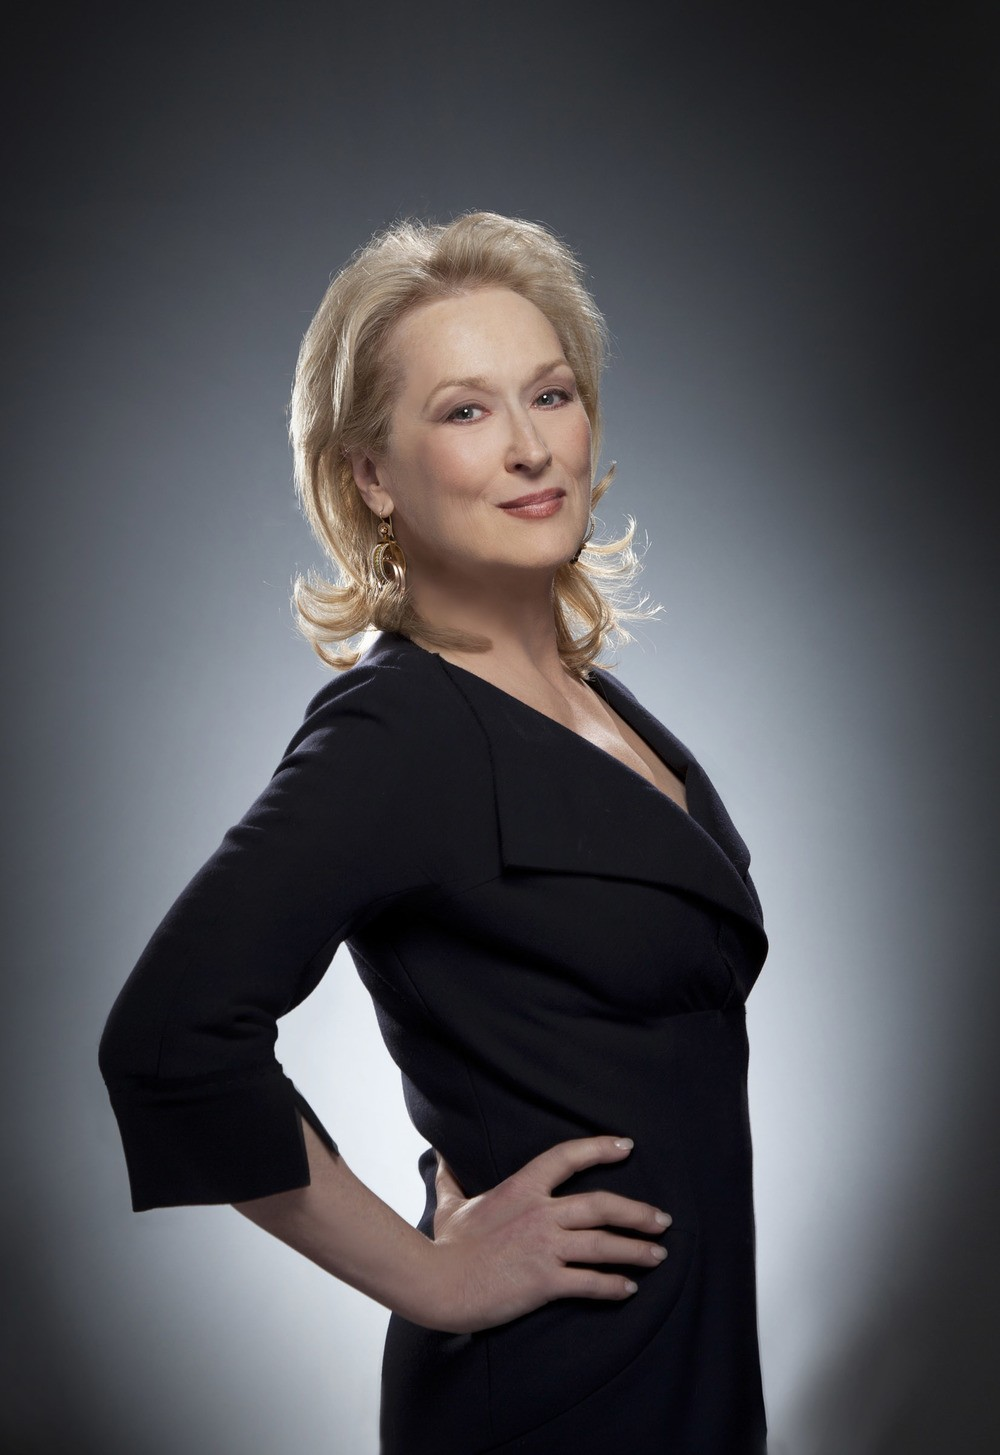 Meryl Streep Wants Congress To Fight For Women's Rights | Streep